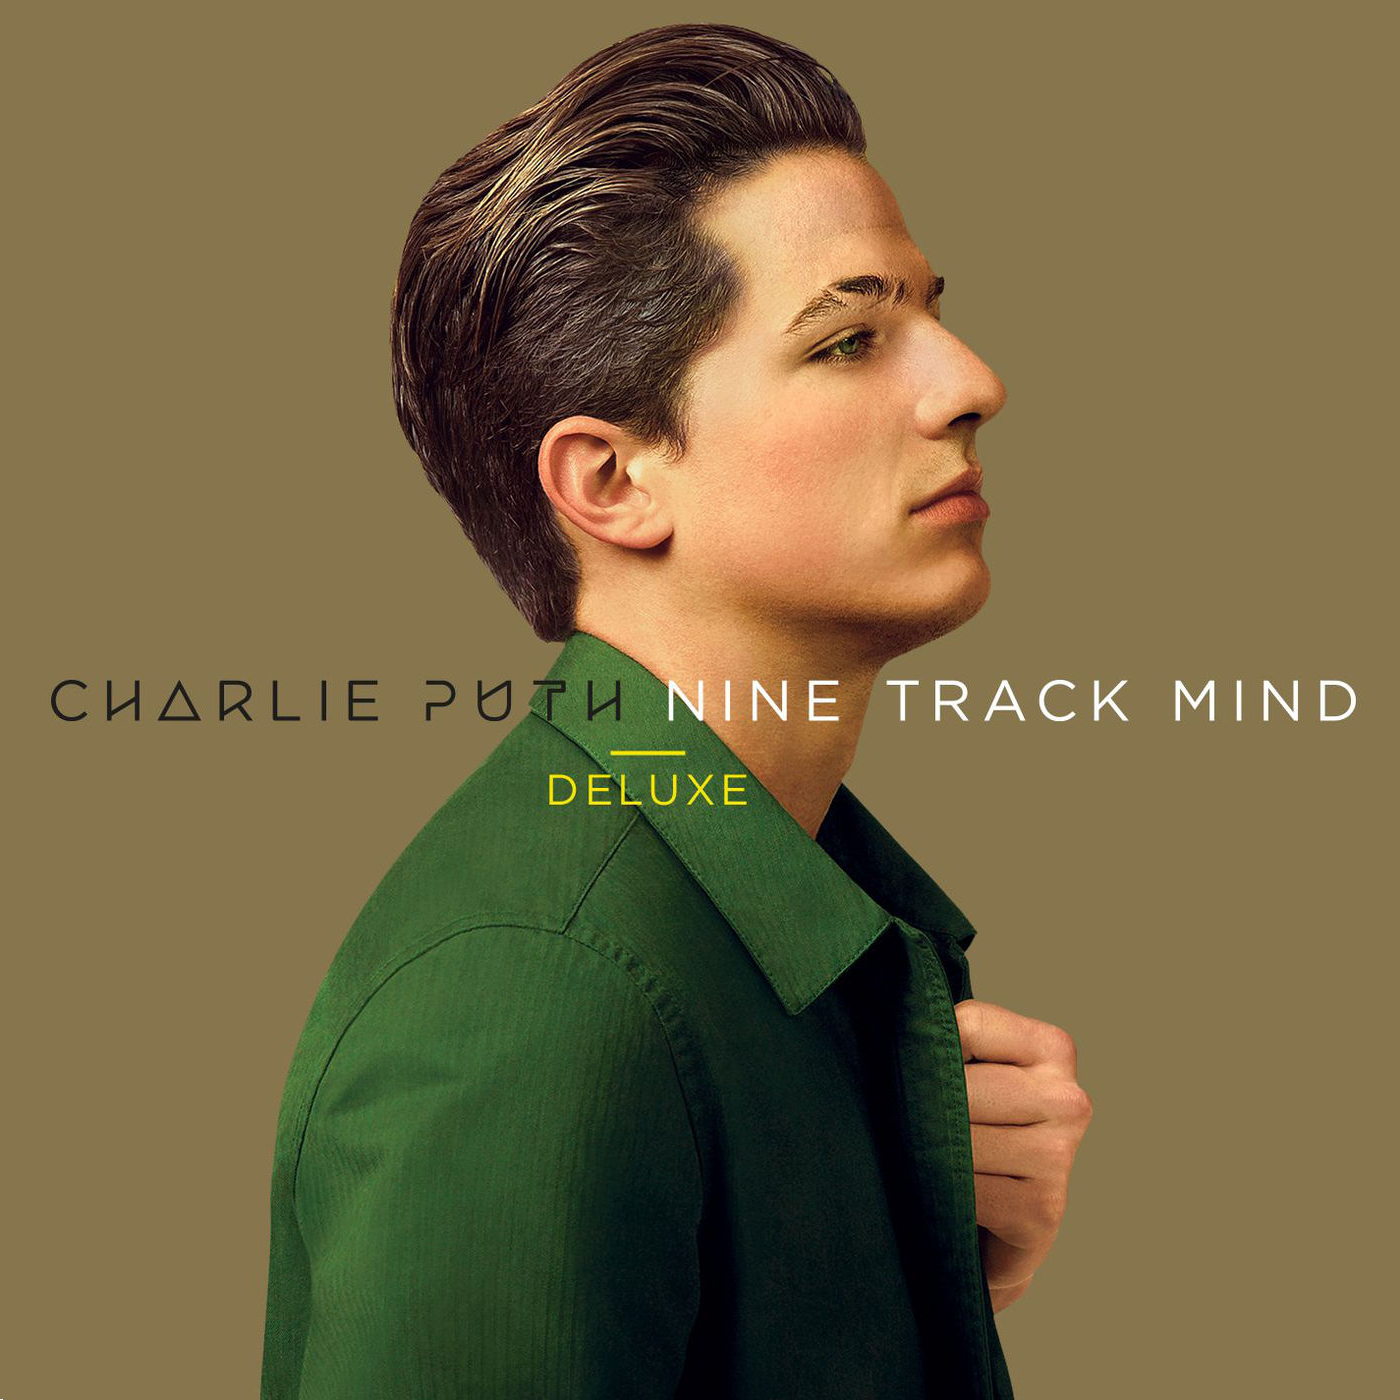 Charlie Puth - Nine Track Mind (Deluxe) [US Version] Cover